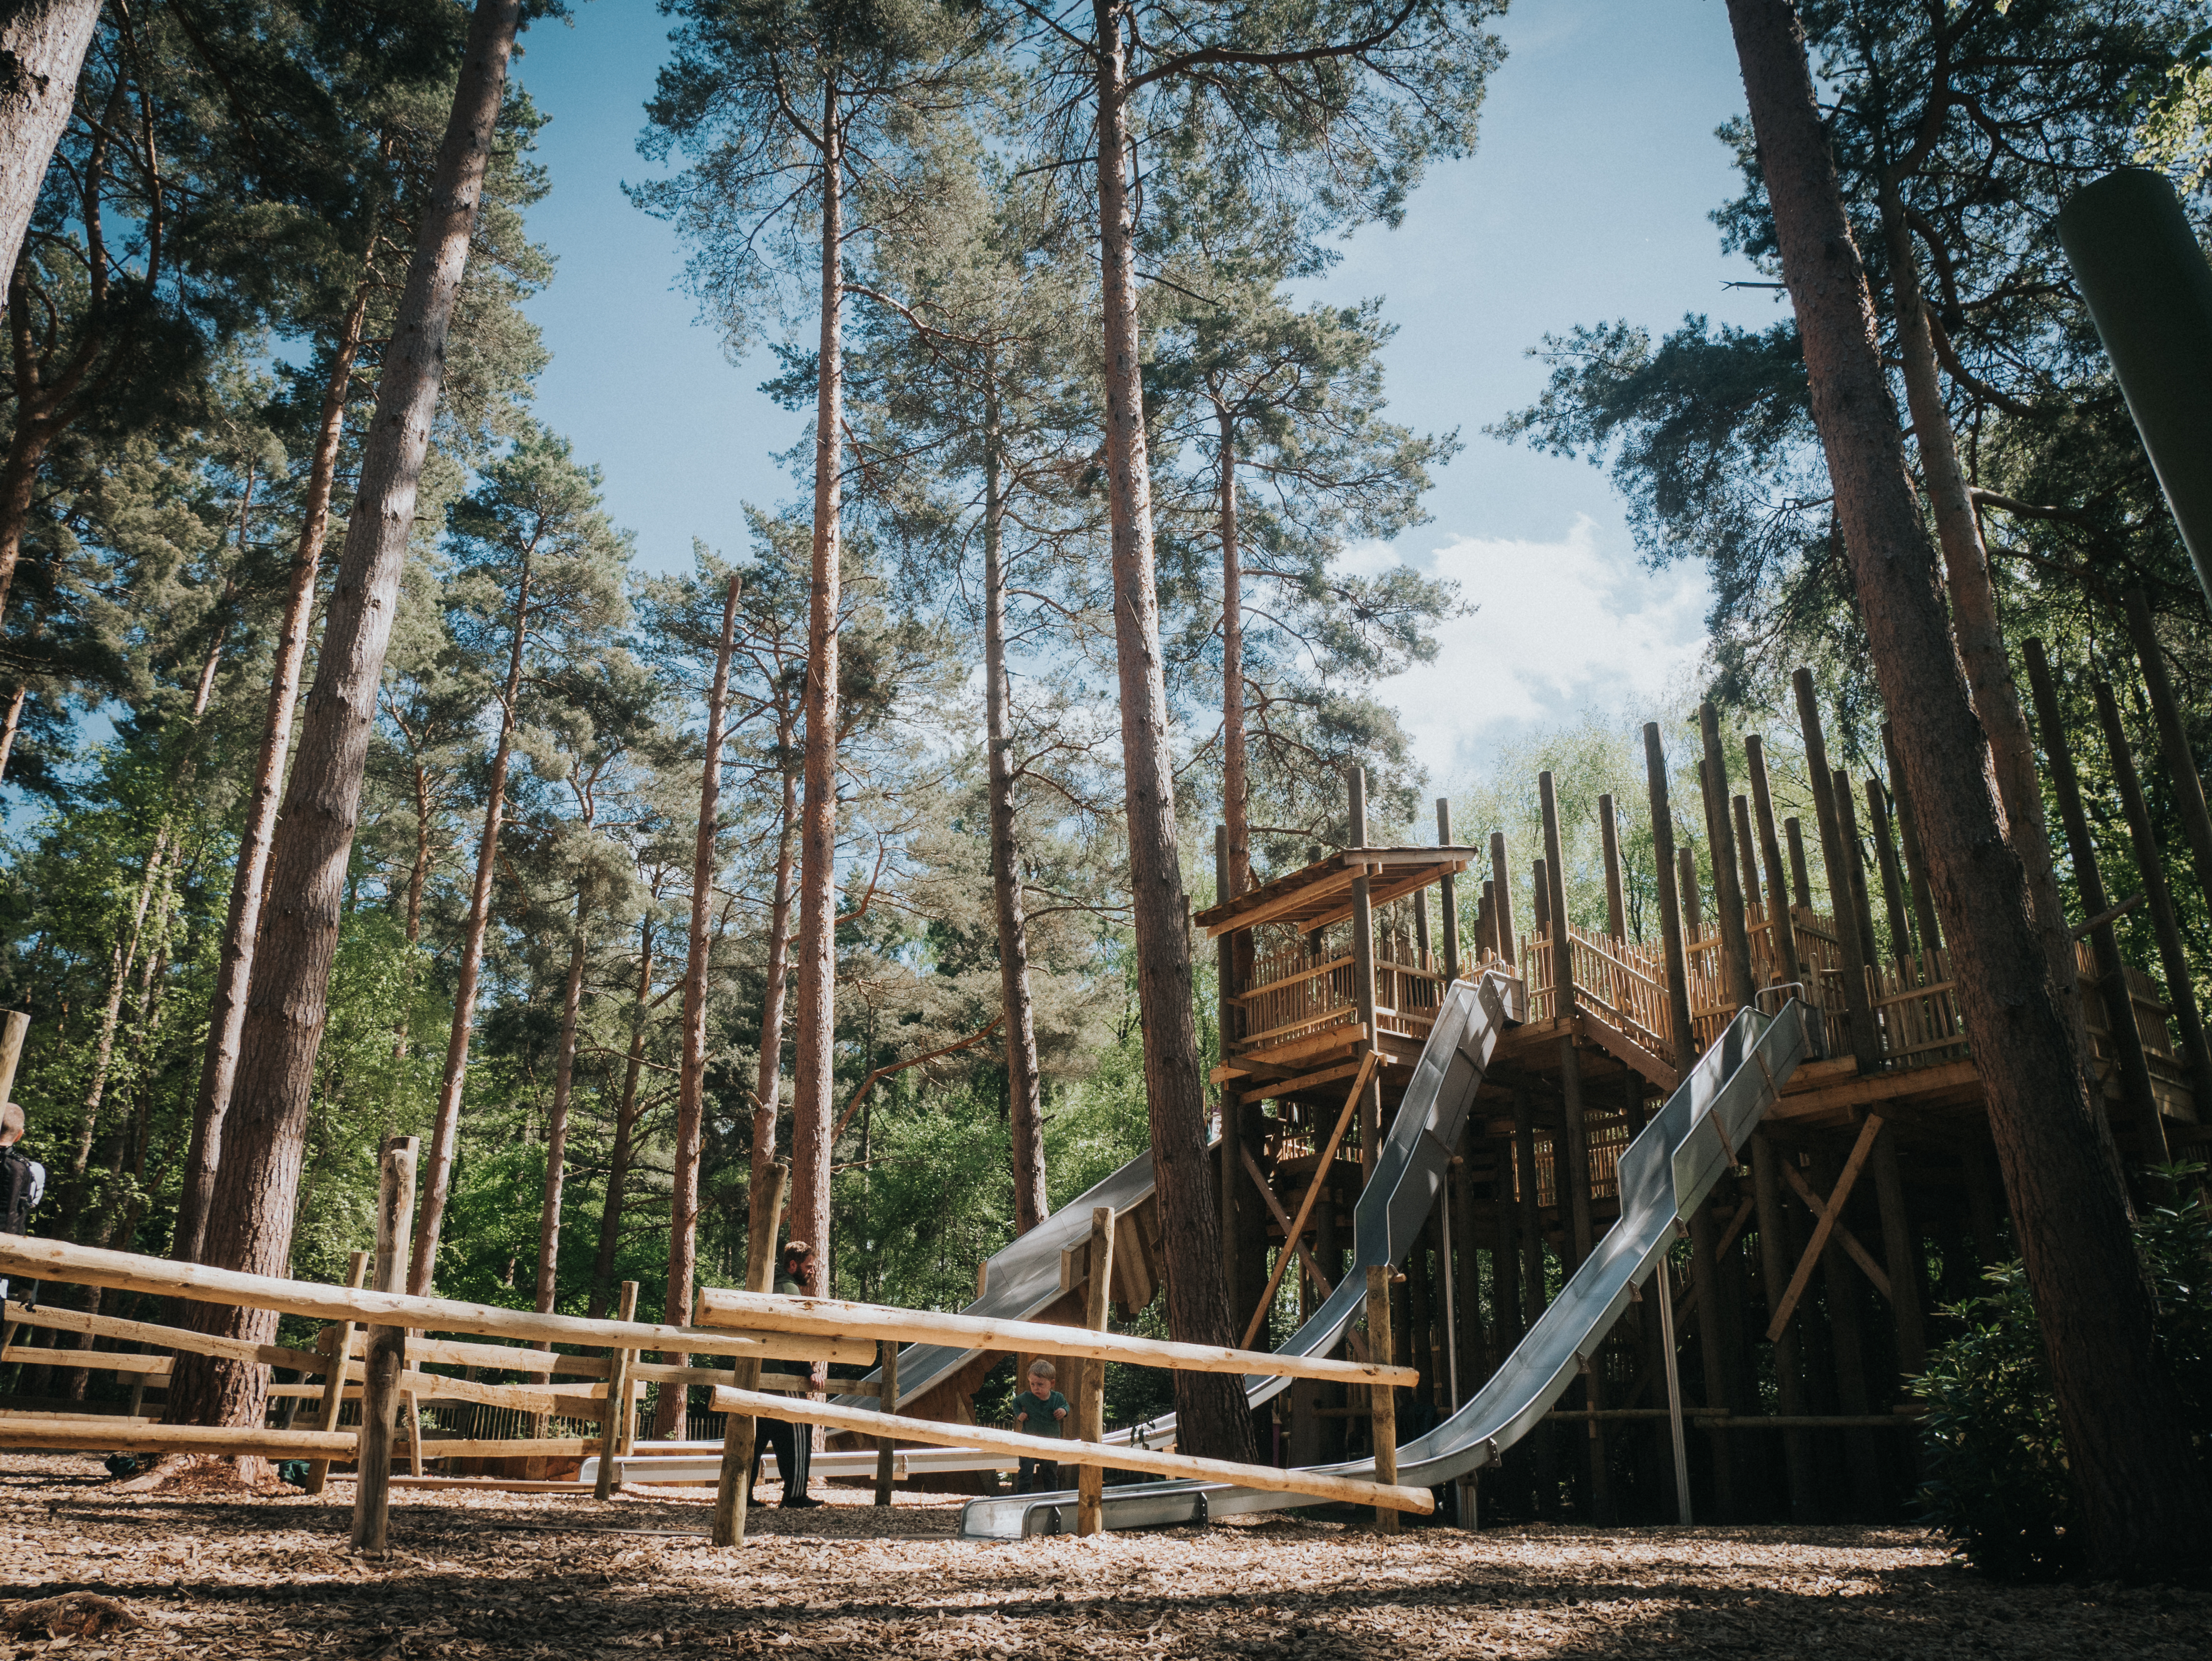 One of the attractions at the new BeWILDerwood Cheshire site